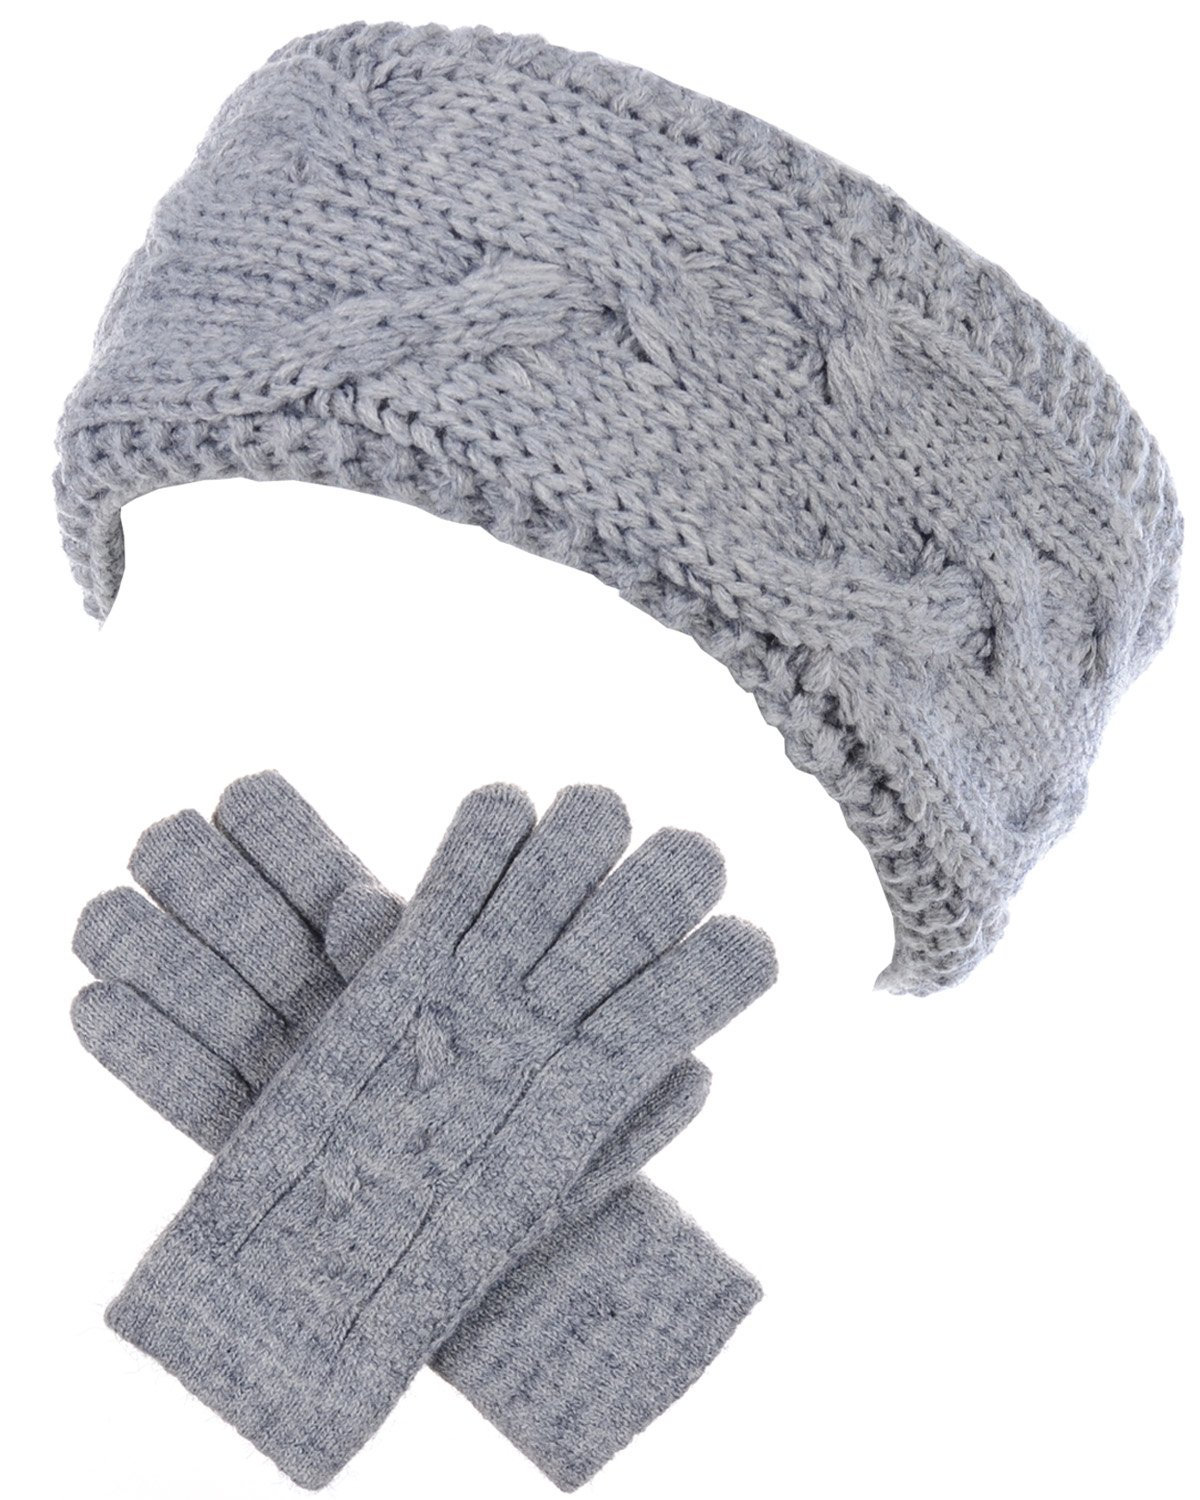 BYOS Winter Chic Plush Sherpa Fleece Lined Knitted Gloves & Headband Wrap Ear Warmer Set (Cable Knit Heather Gray)